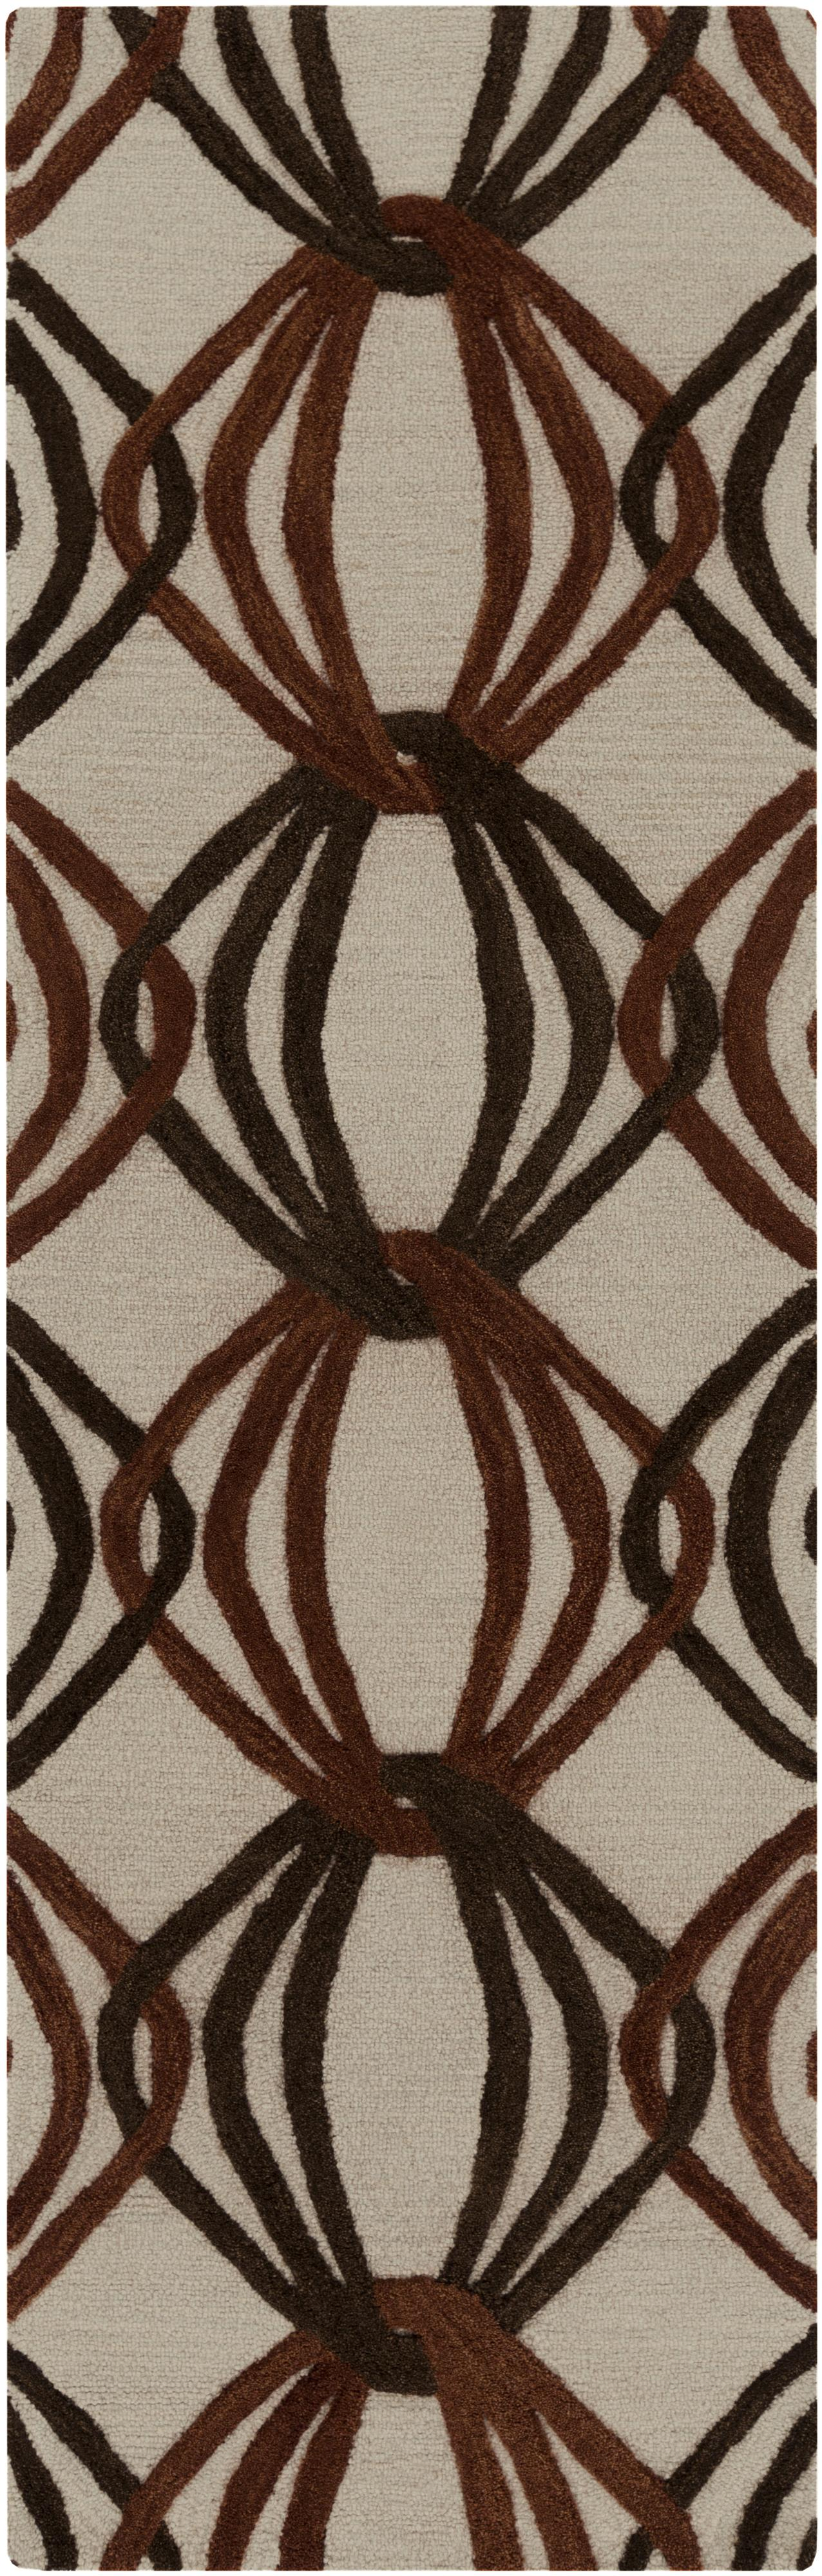 "Surya Rugs Dream 2'6"" x 8' - Item Number: DST1176-268"